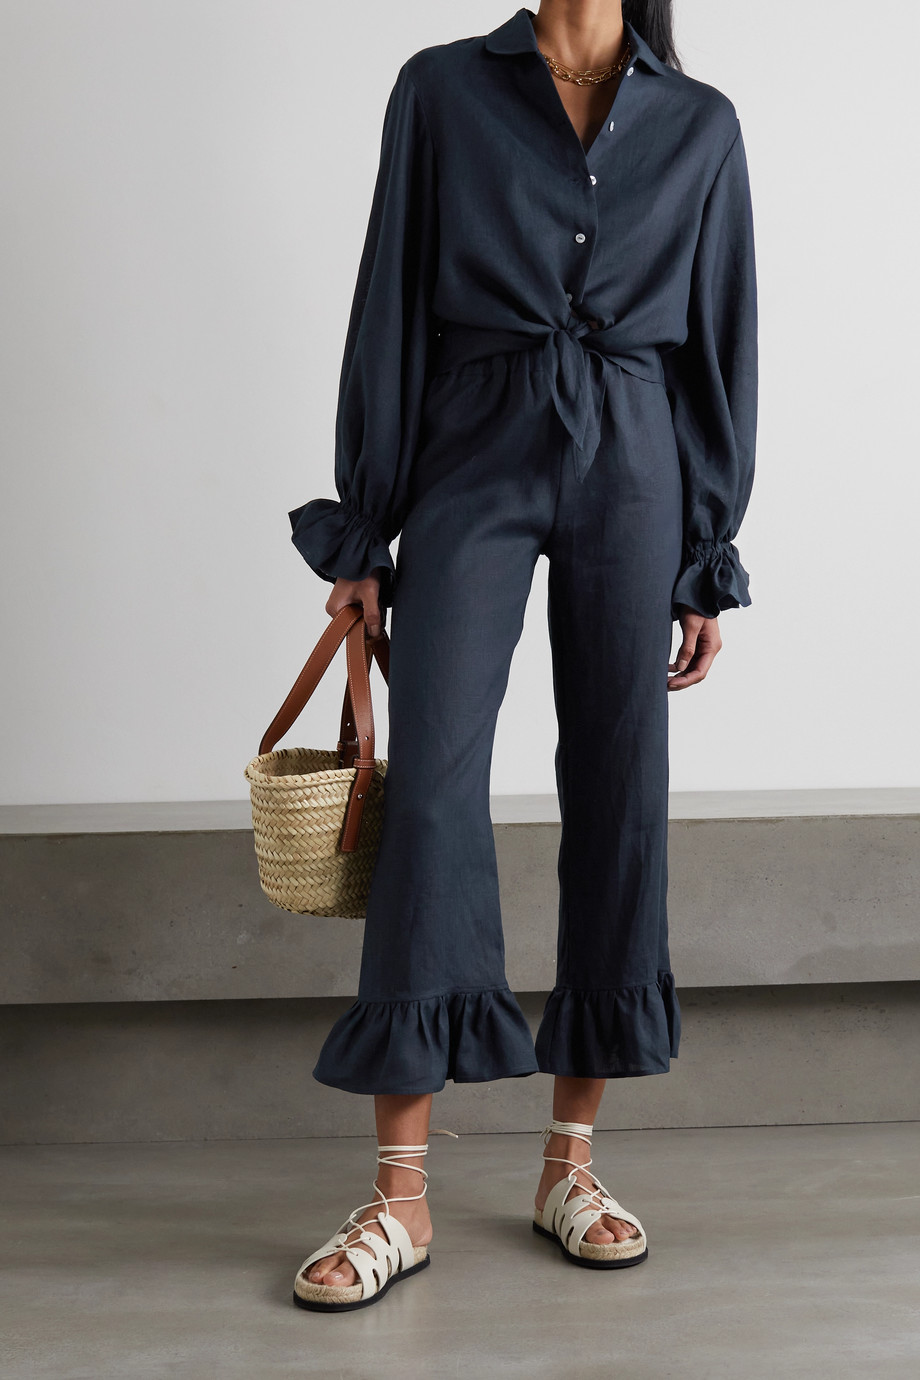 SLEEPER Rumba ruffled linen shirt and pants set